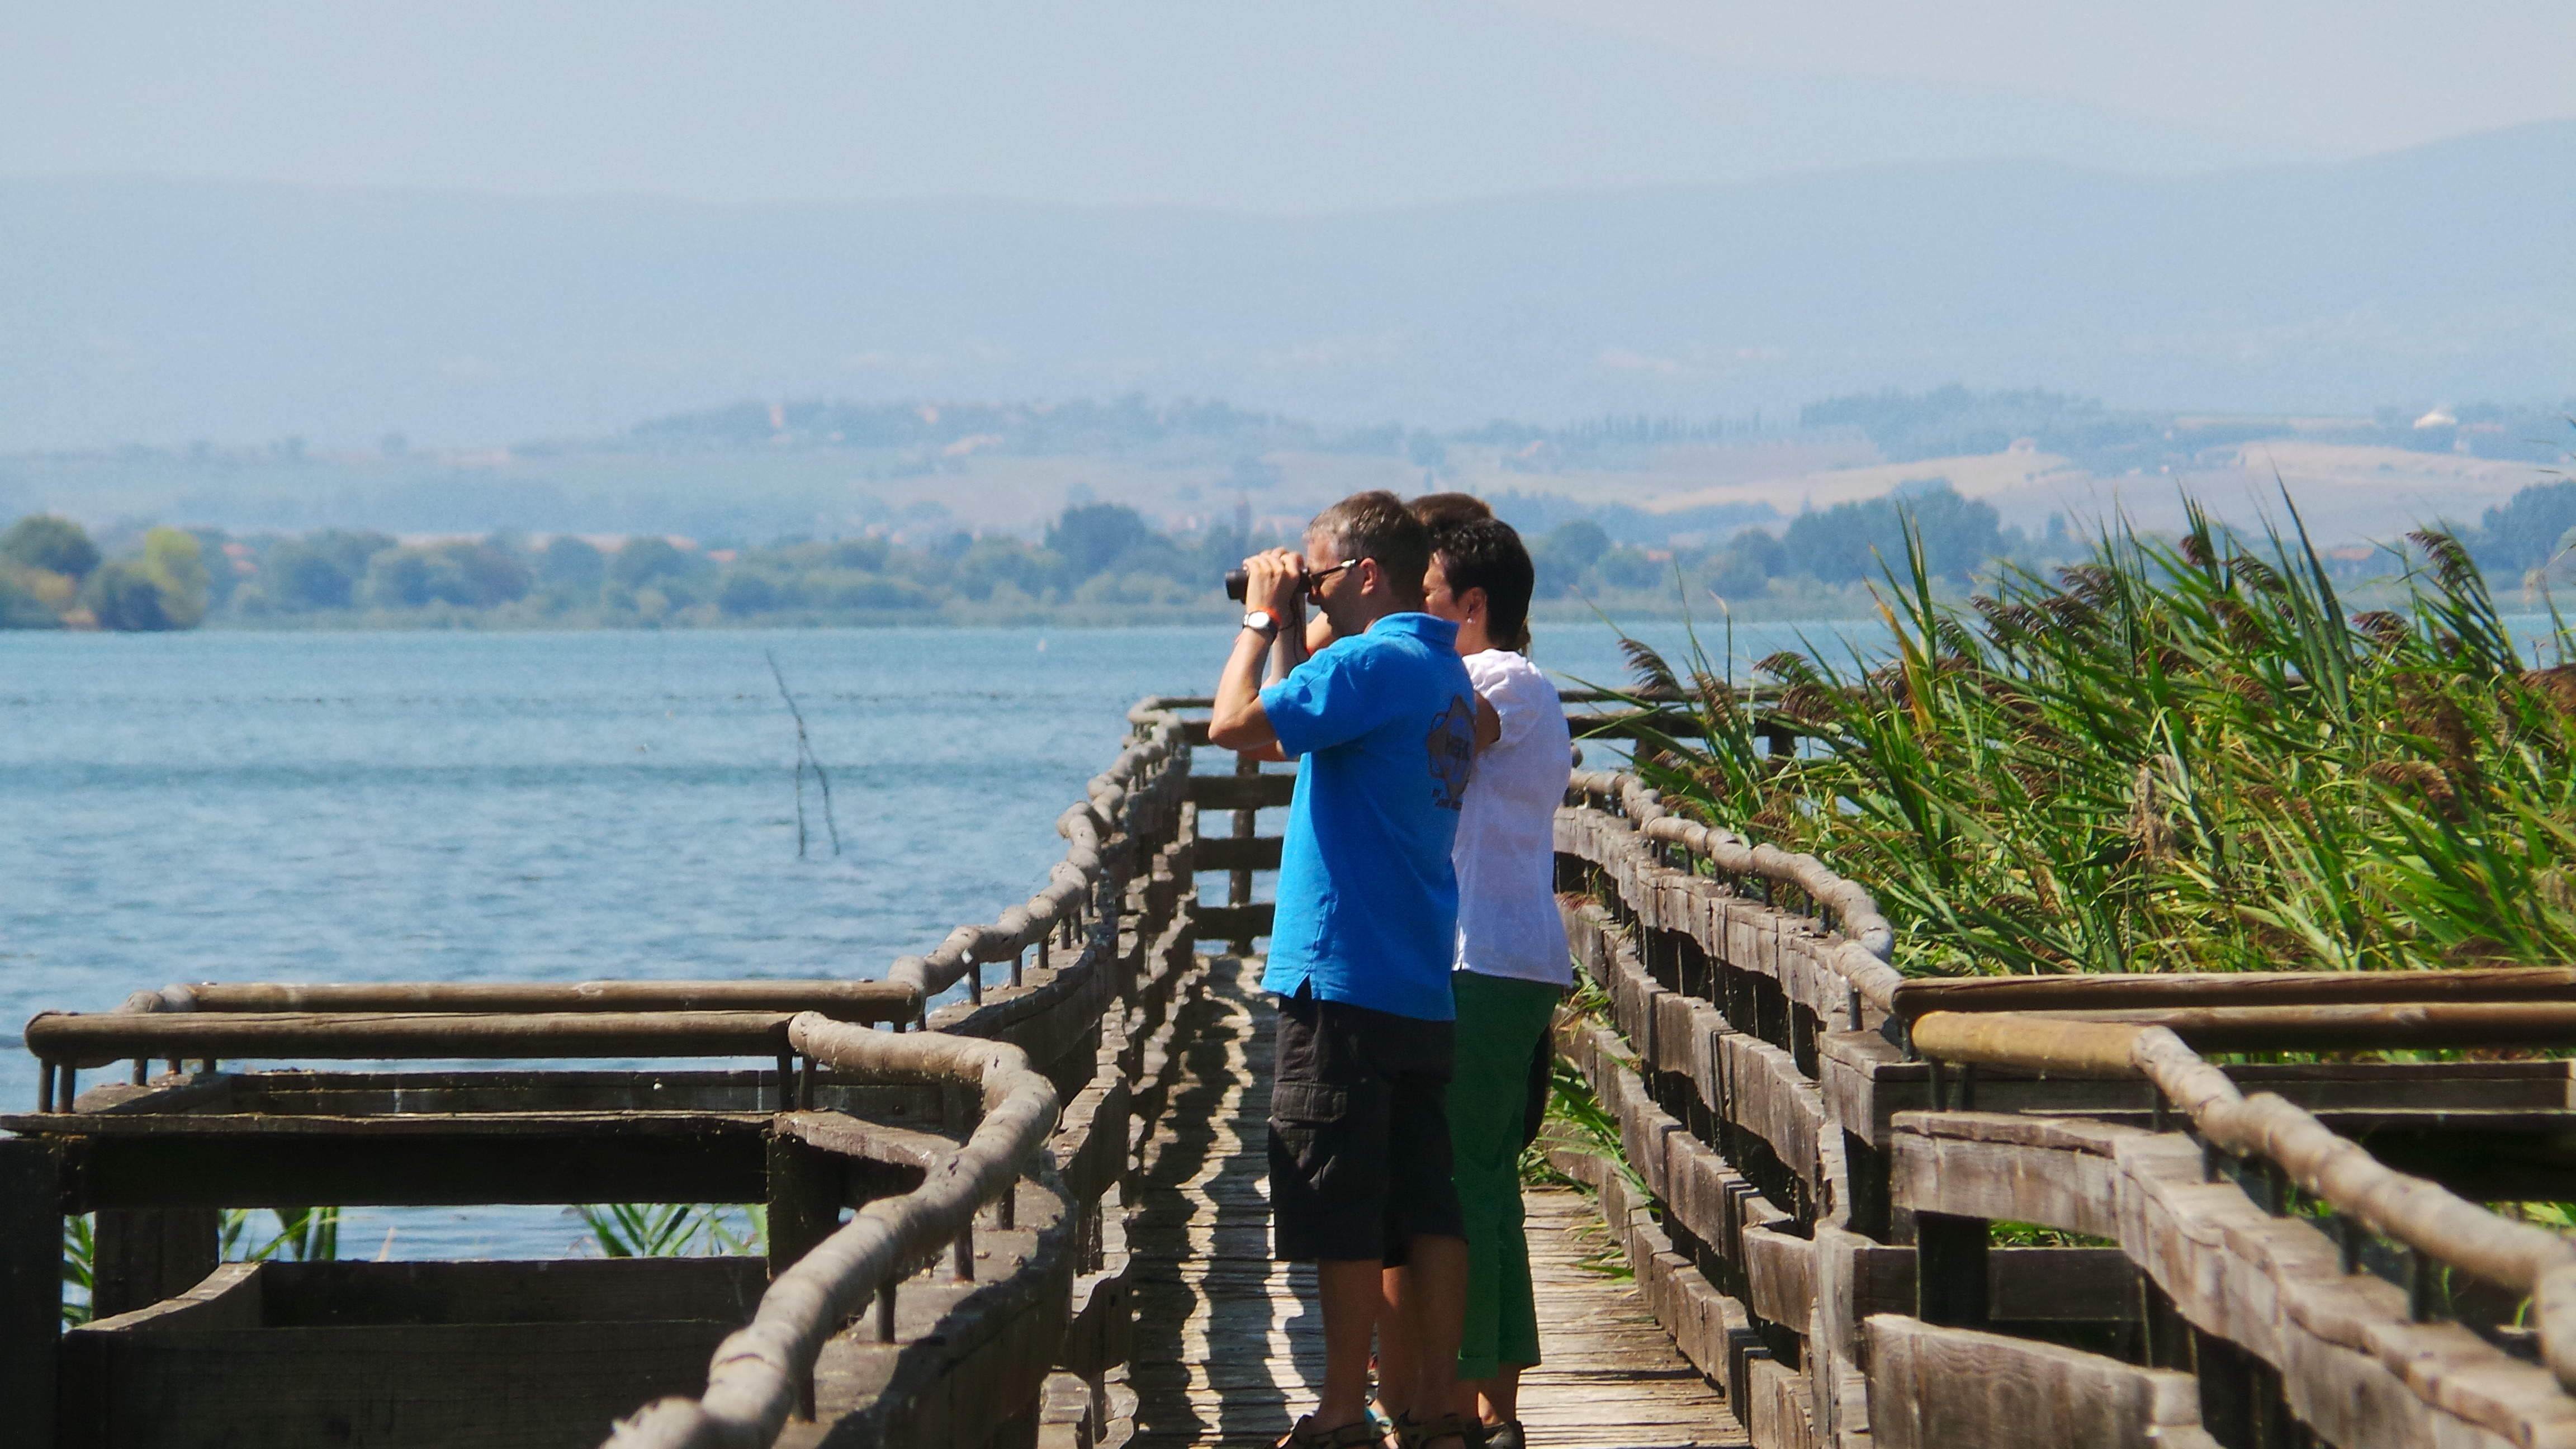 Birdwatching at Lake Trasimeno